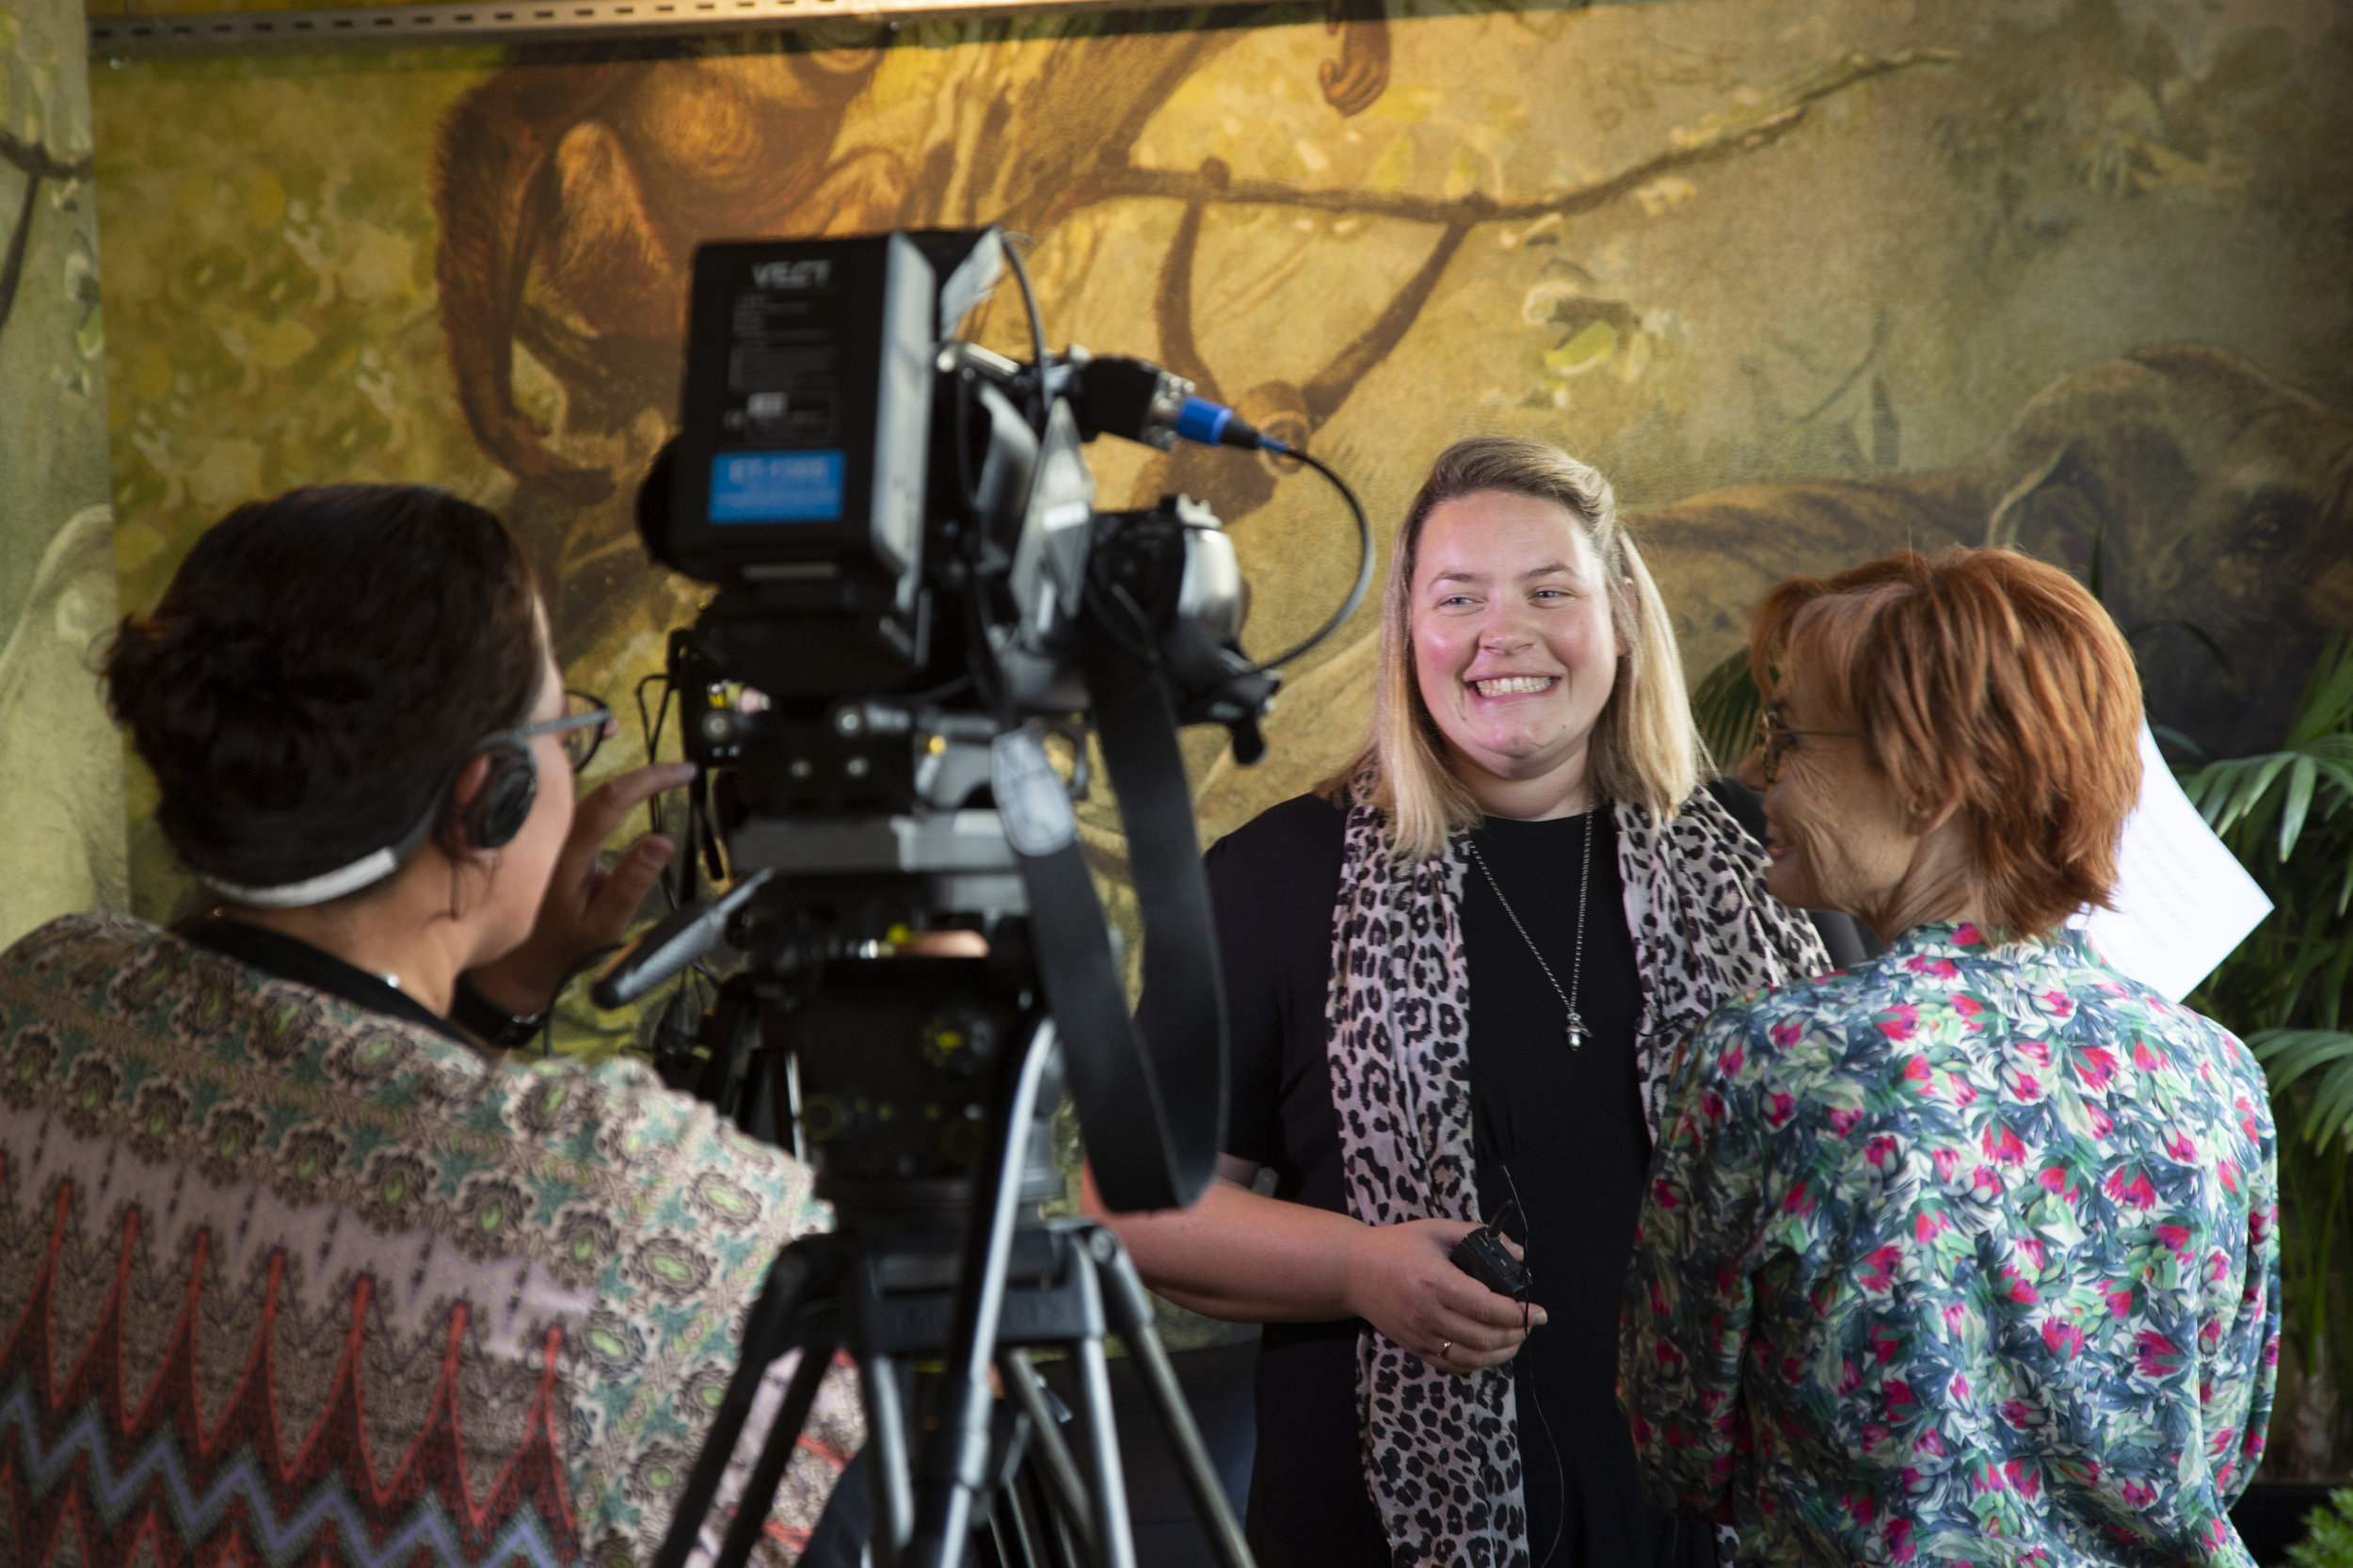 Julia Wick is interviewed by the LAA team at the NZILA President's cocktail function earlier this year.